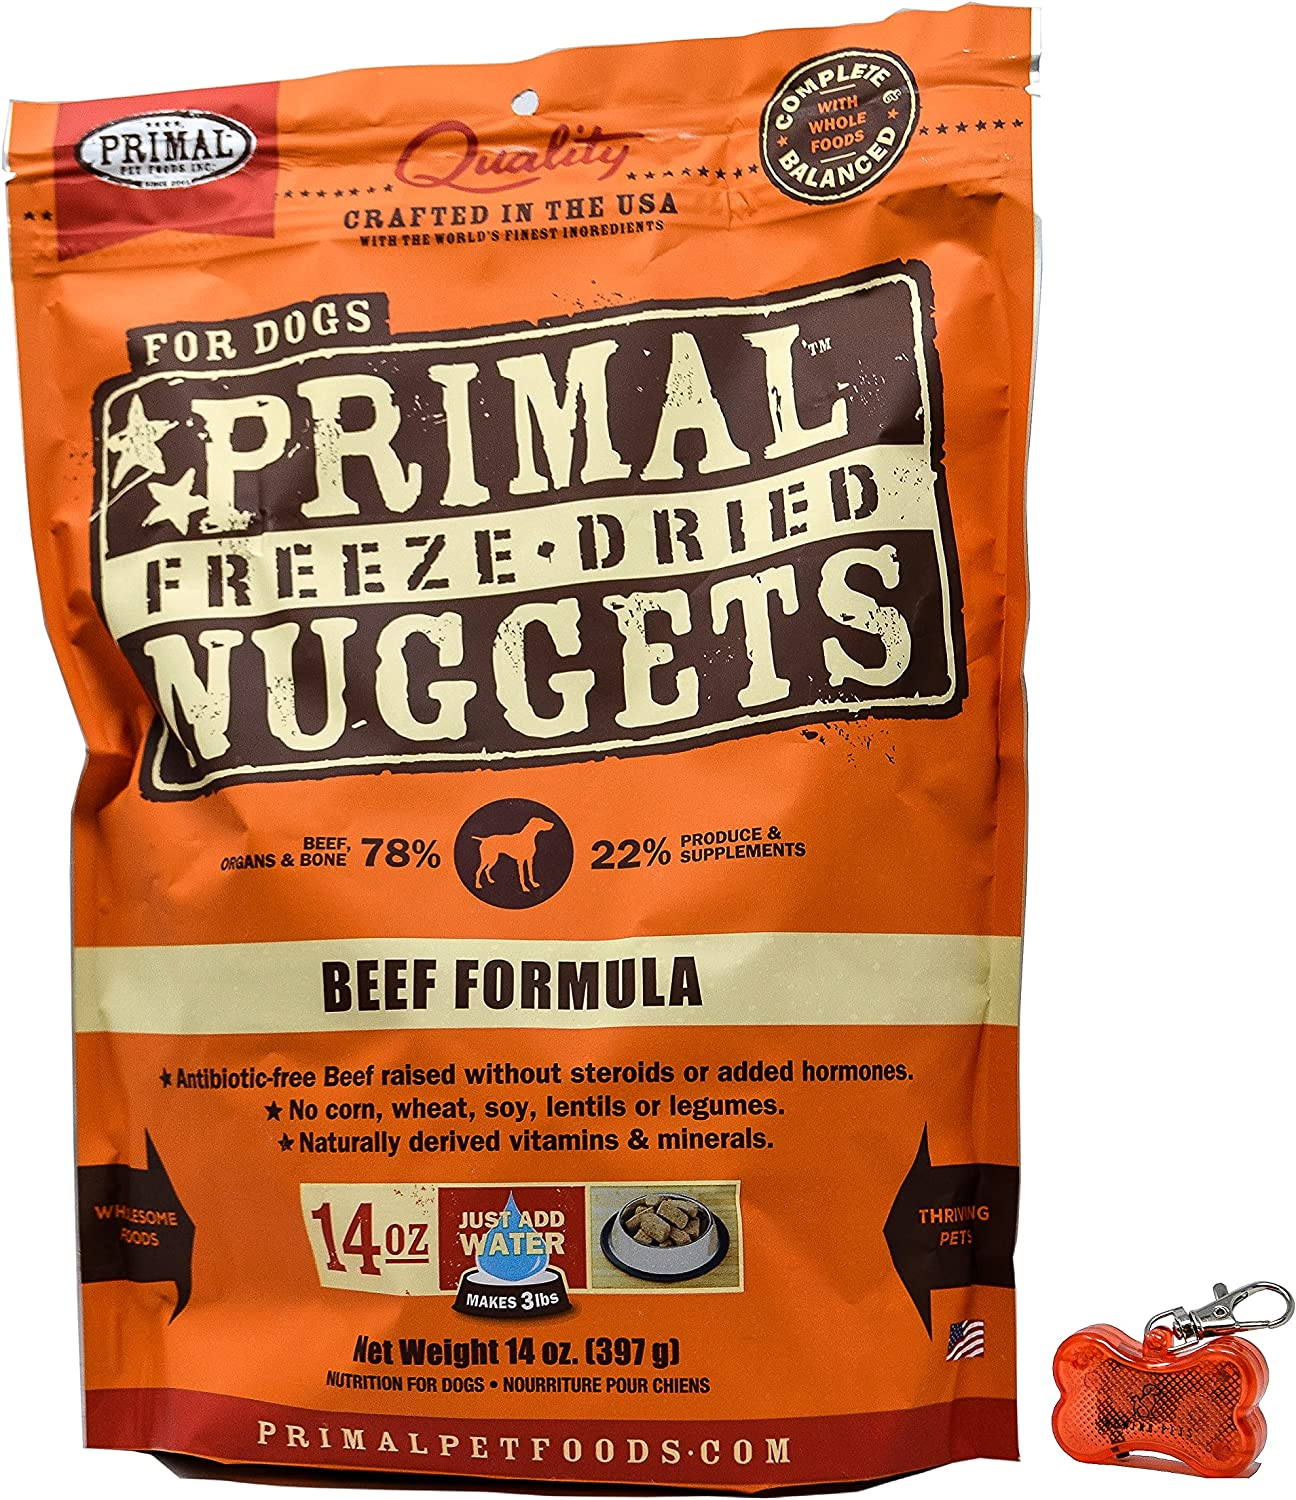 Primal Pet Food - Freeze Dried Beef Nuggets Dog Food 14oz Bag with WoWing Pets Pendant